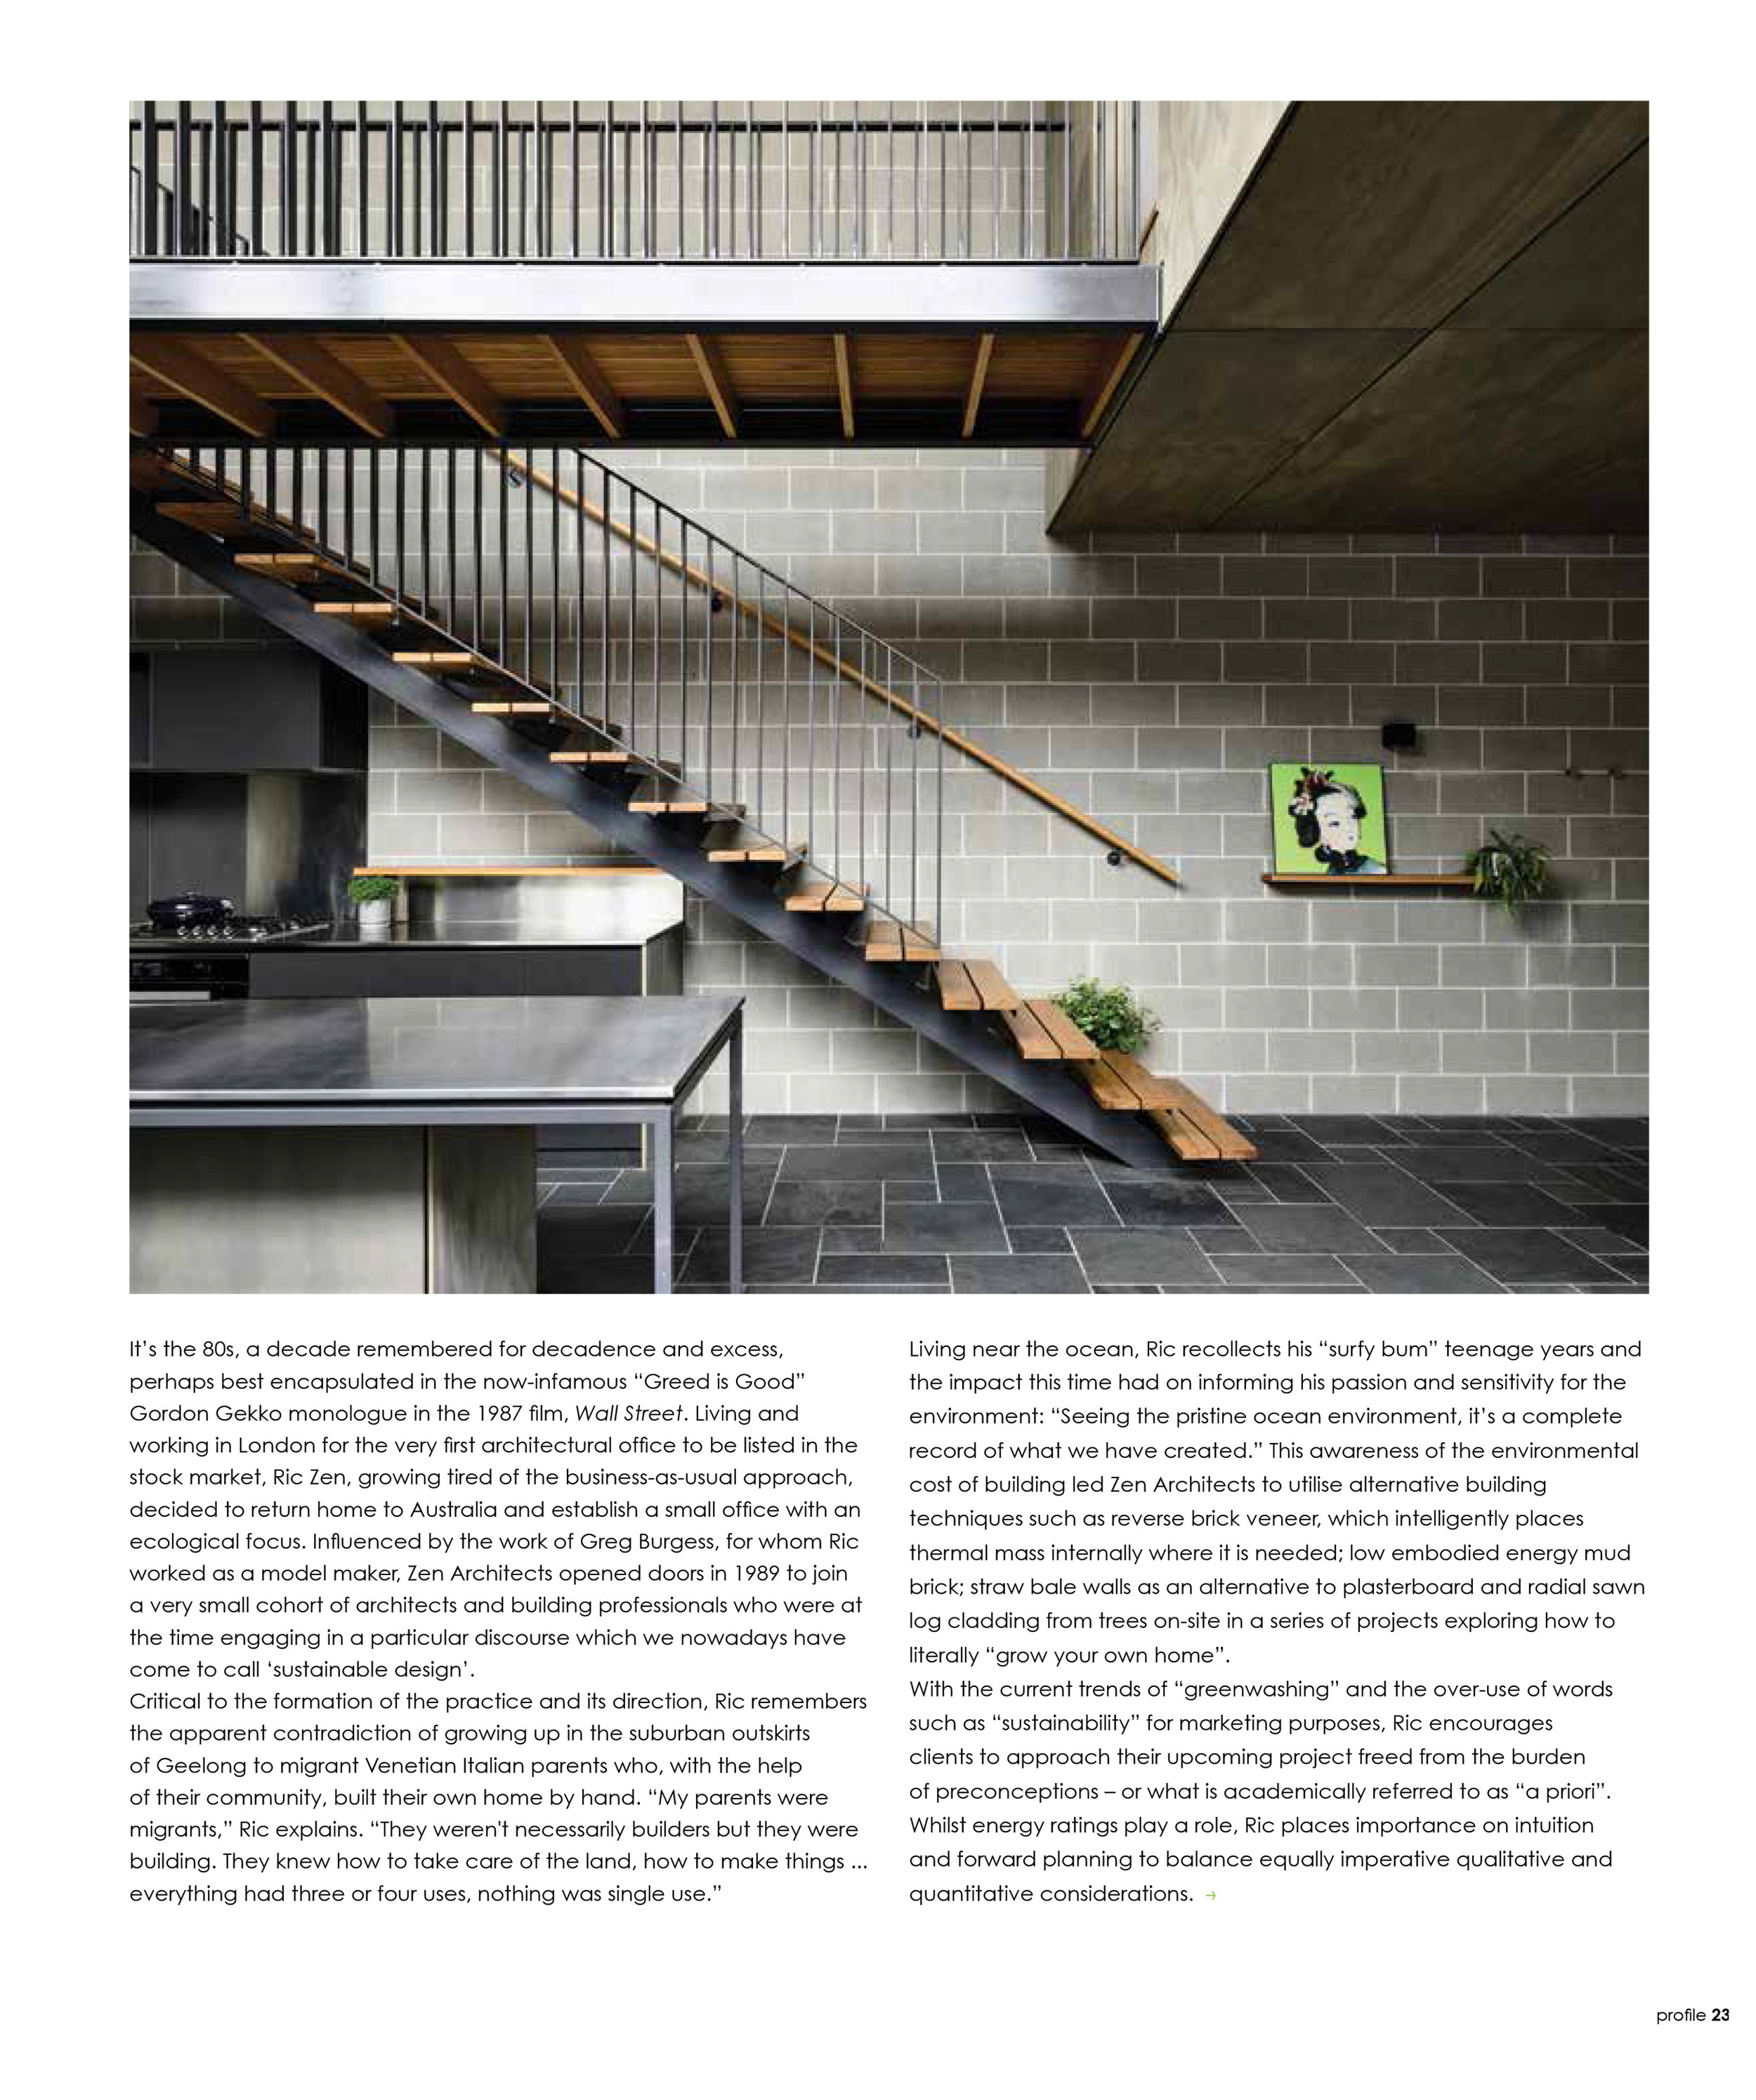 2019_Green Magazine_Profile_Article-2.jpg